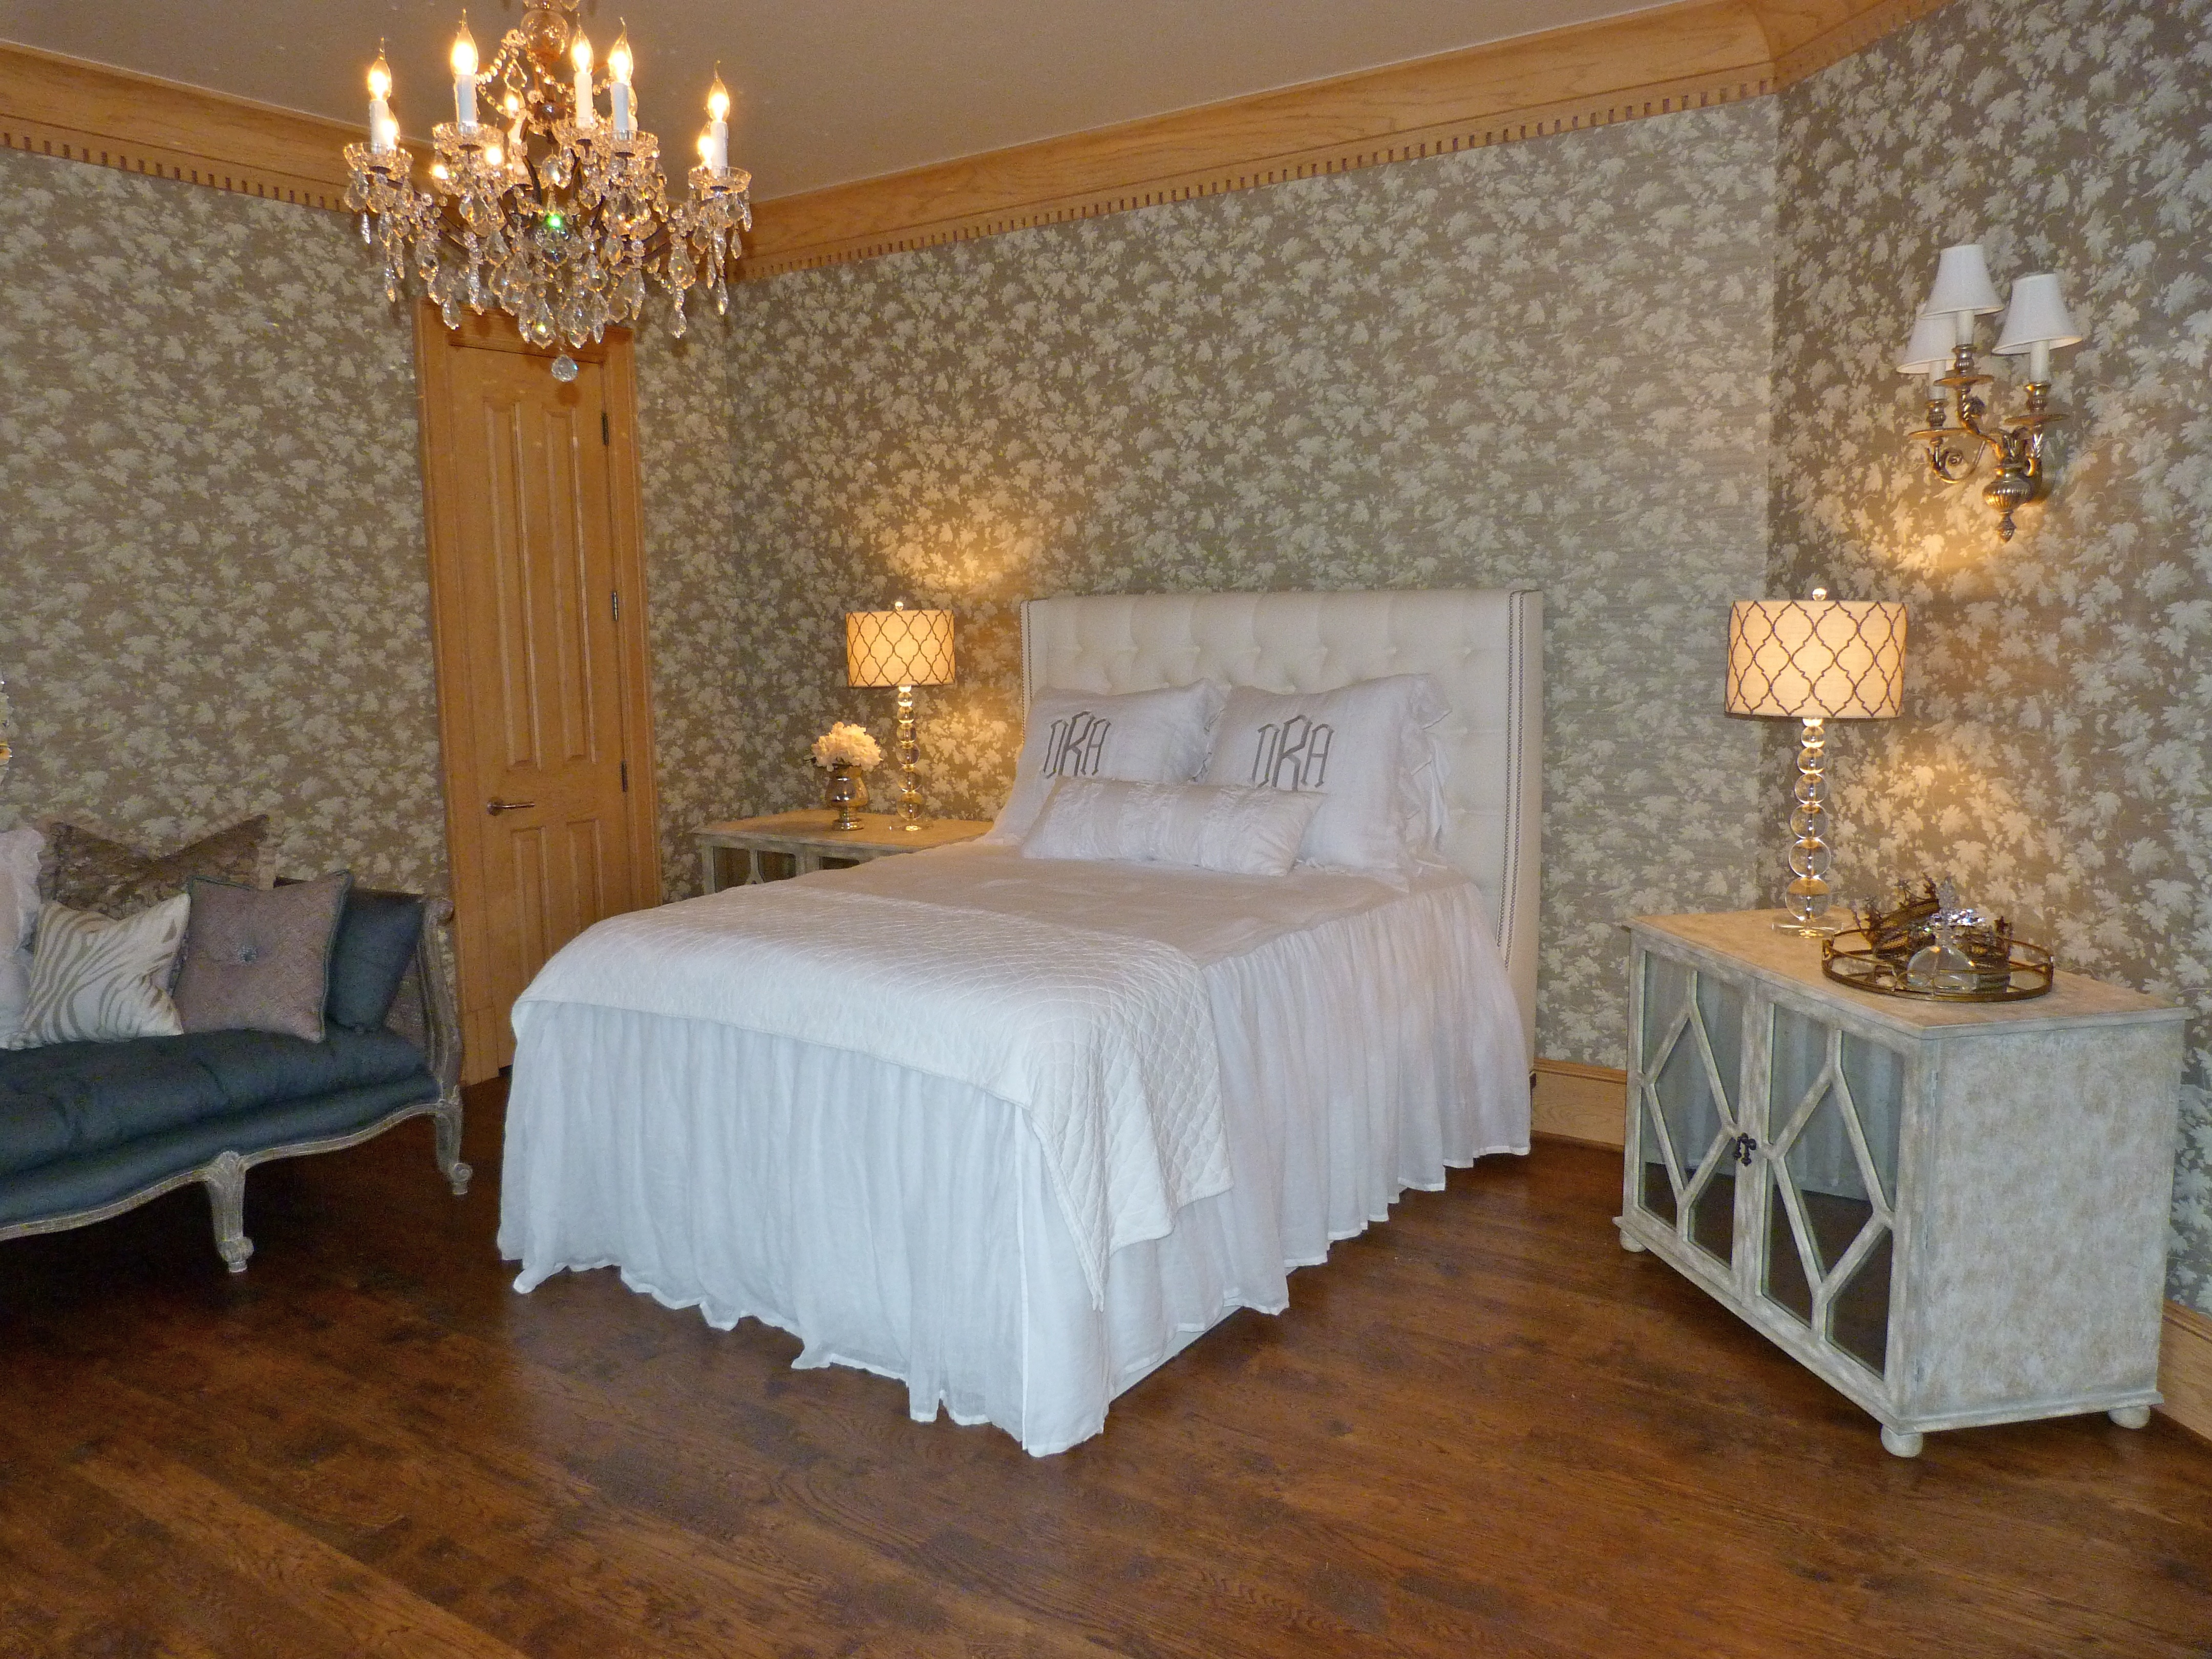 majestic interior design games for girls. Bedroom designed by Majestic Construction interior designer Man Caves for Sports Fanatics